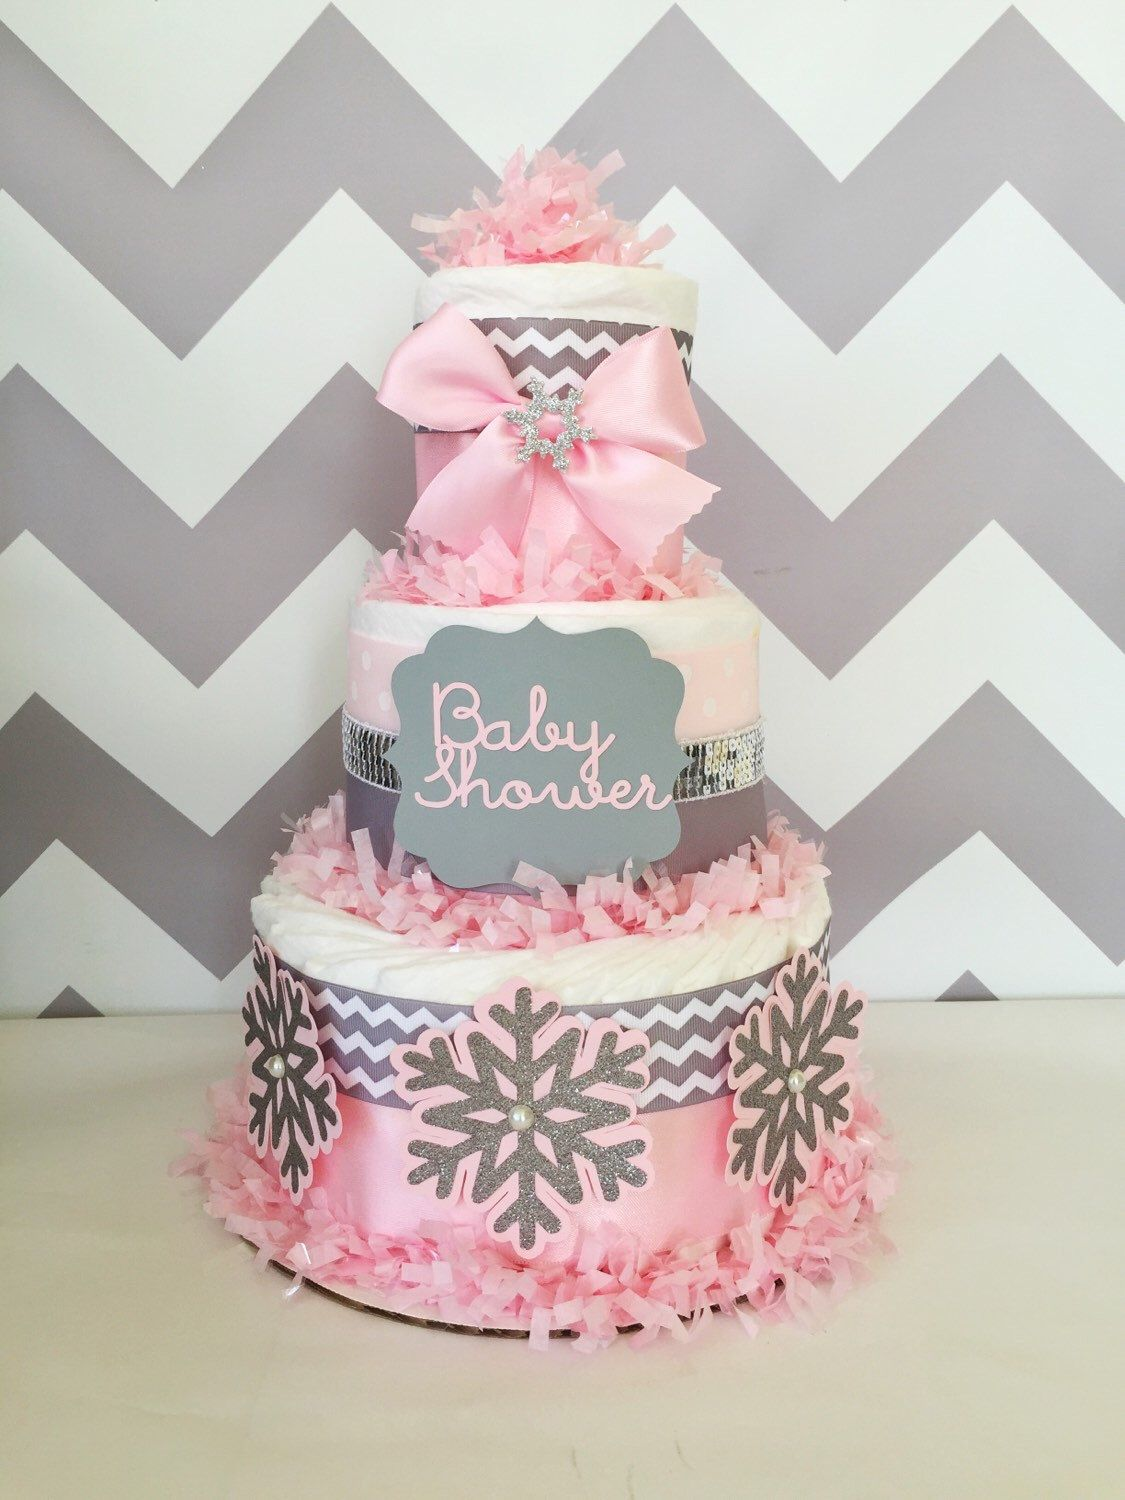 Chevron Winter Baby Shower Centerpiece In Pink And Gray, Winter Baby Shower  Diaper Cake,